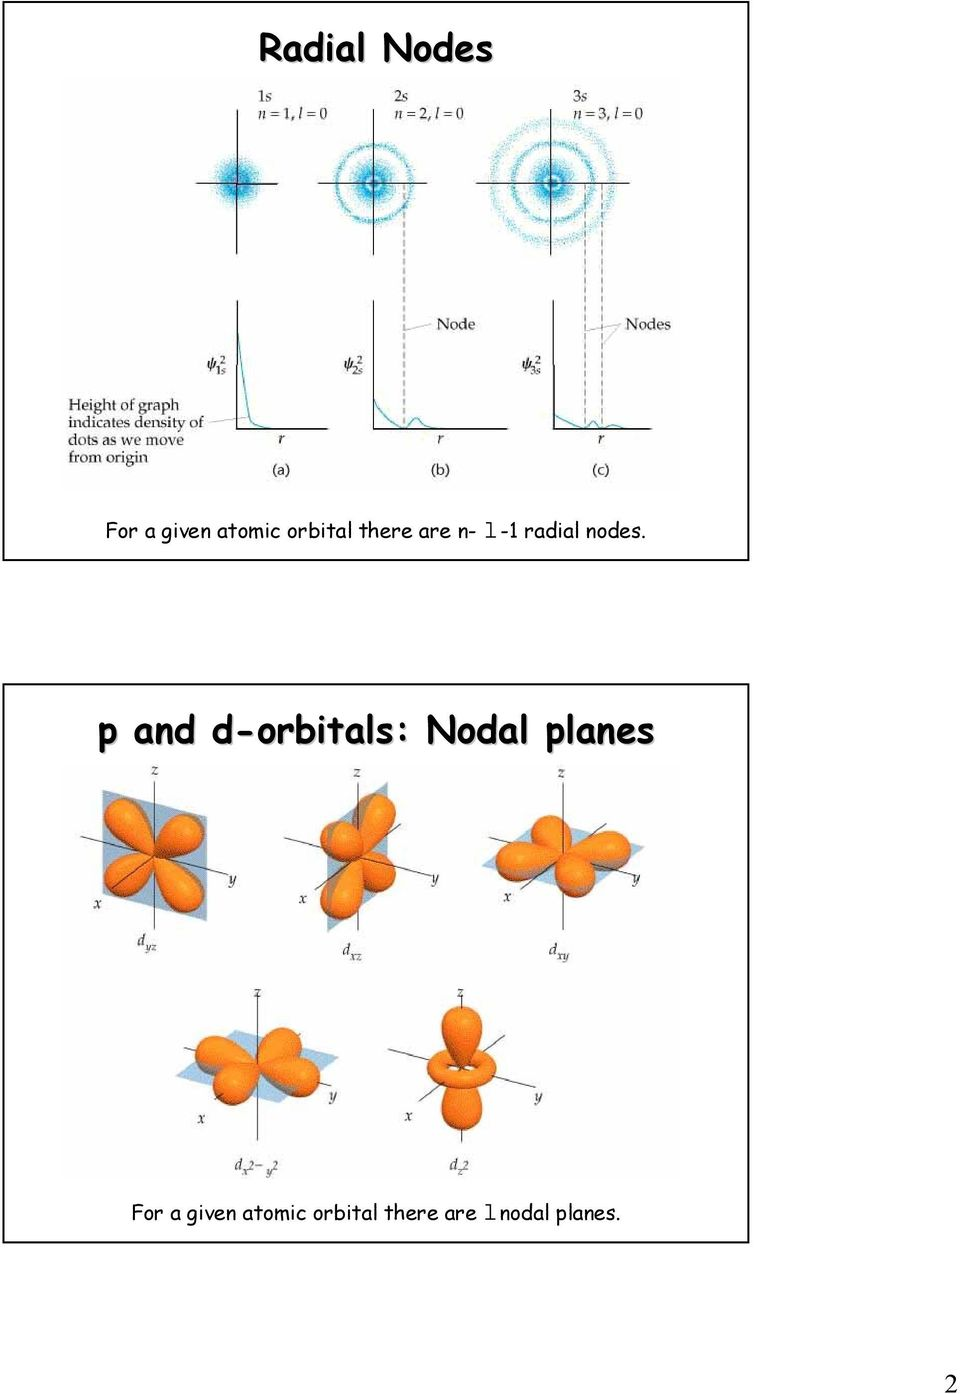 p and d-orbitals orbitals: : Nodal planes